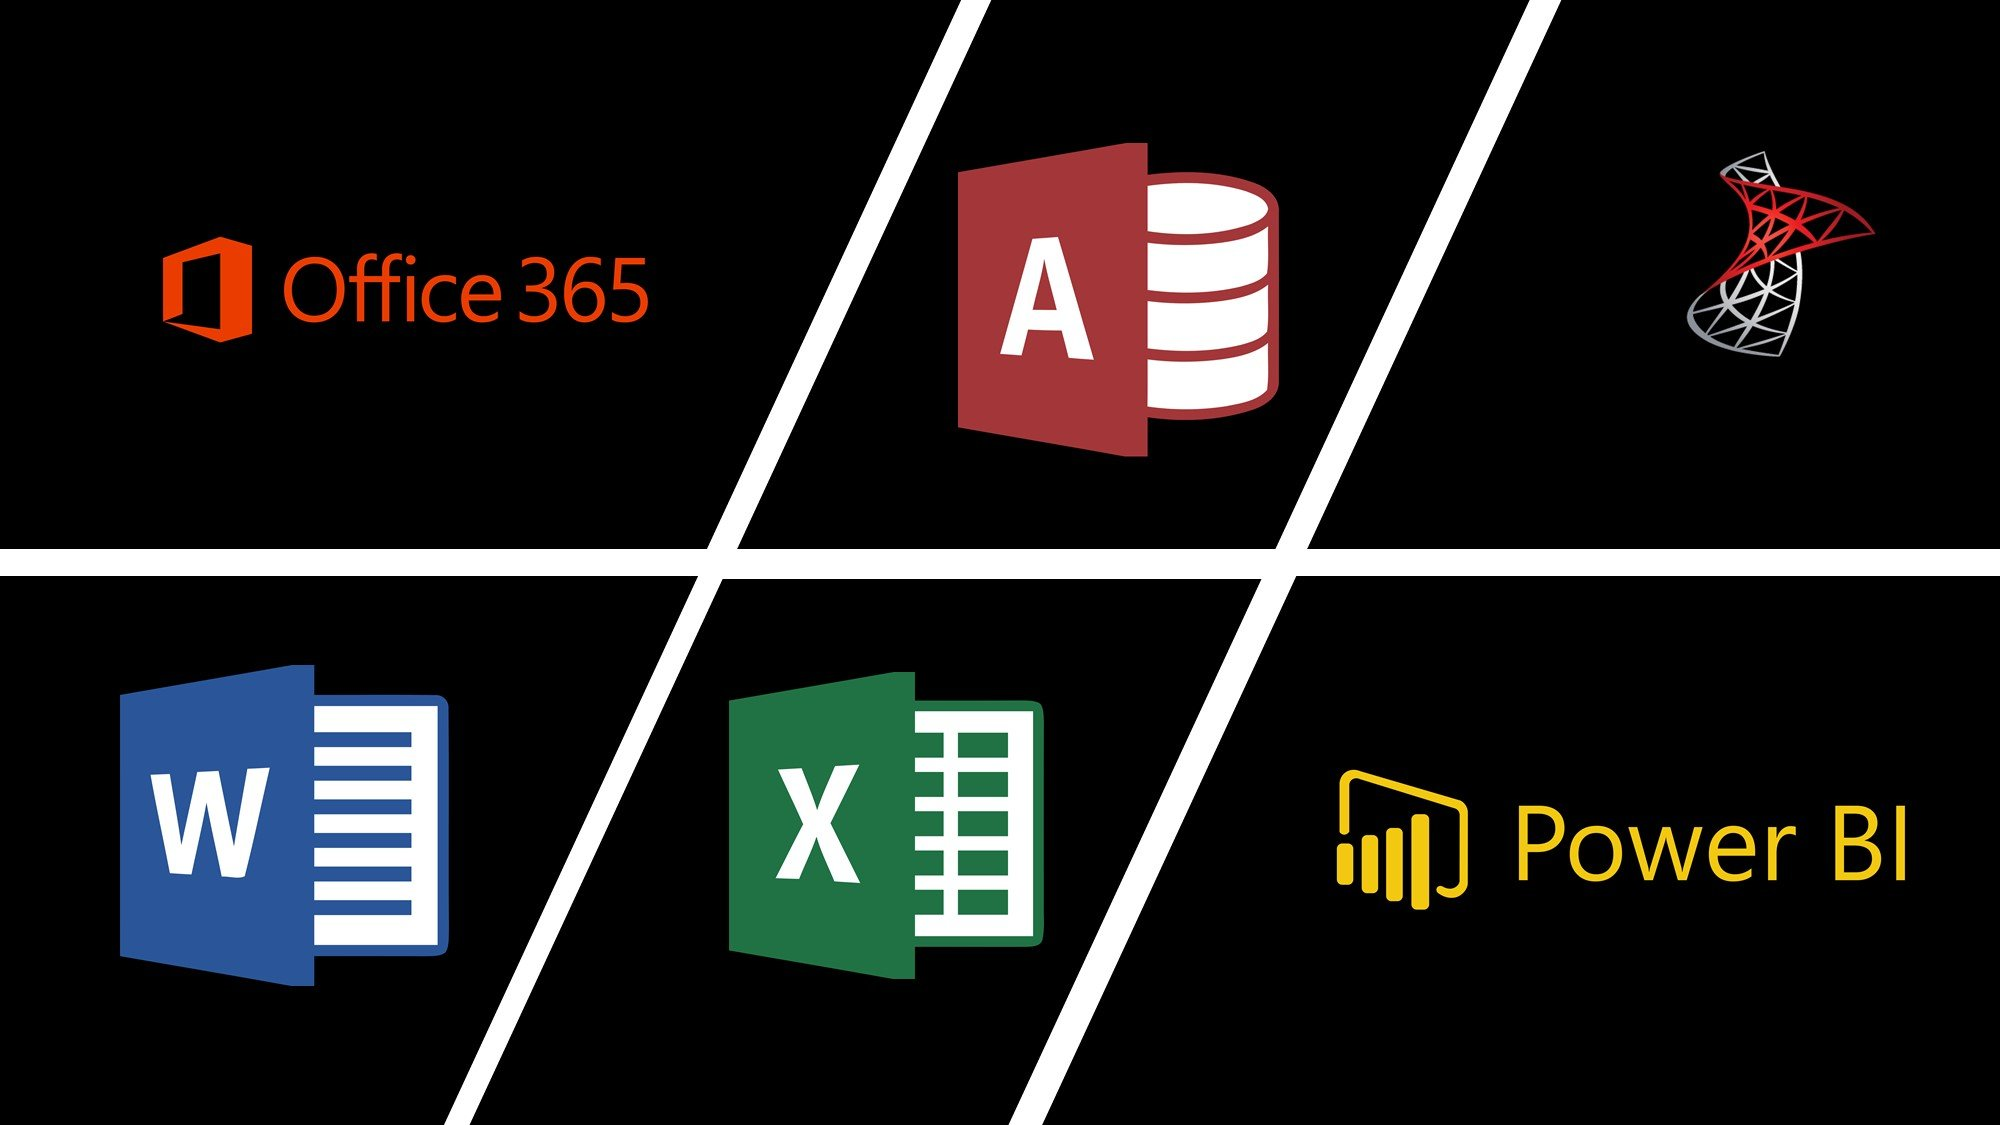 Listing Excel Workbooks And Sheets From Microsoft Access